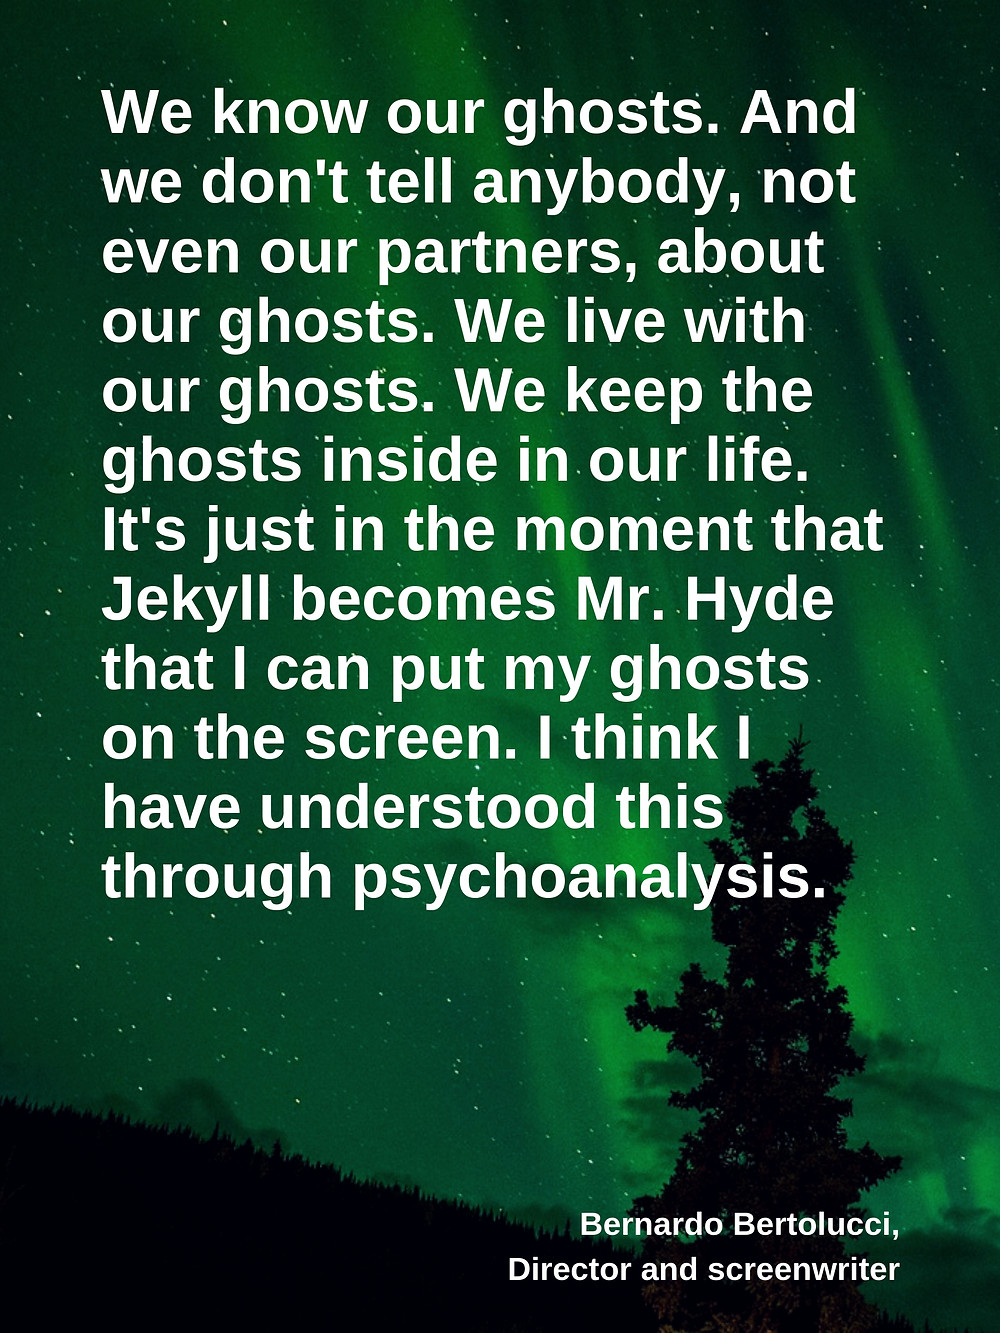 Ghosts and psychoanalysis